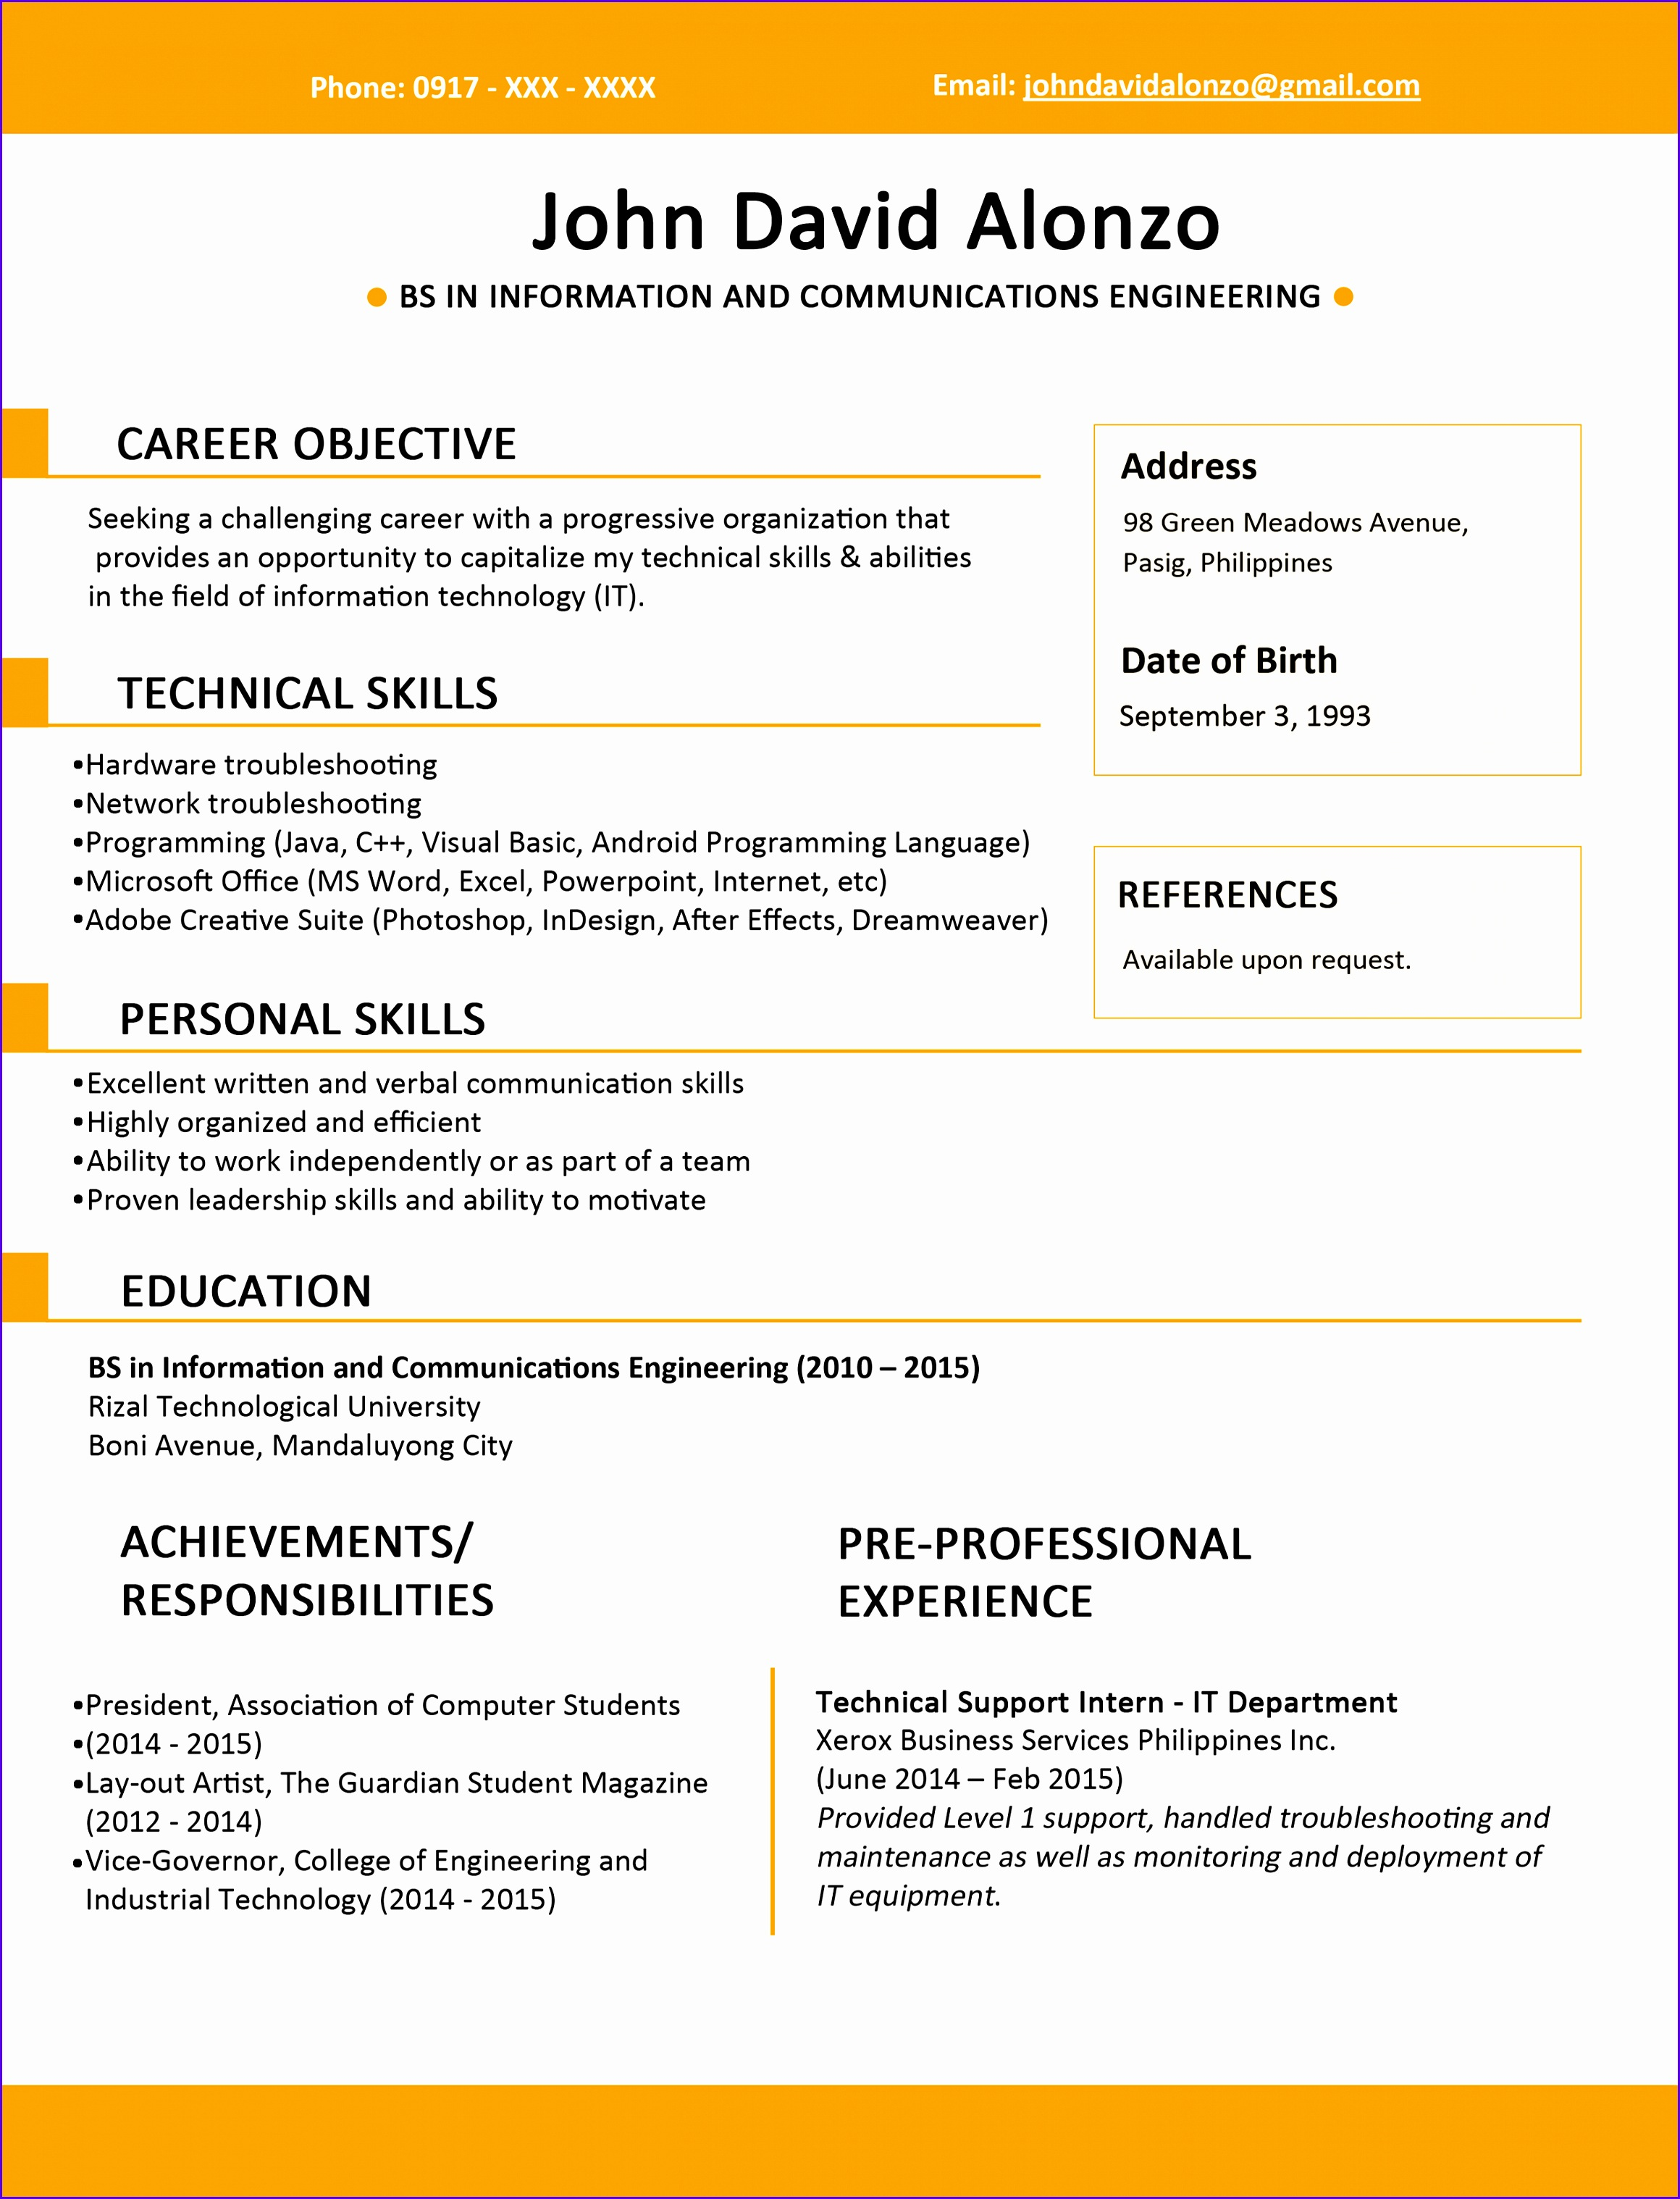 Example Fresh Statement Of Account Template Gspxf Fresh Sample Resume format for Fresh Graduates E Page format 25503300